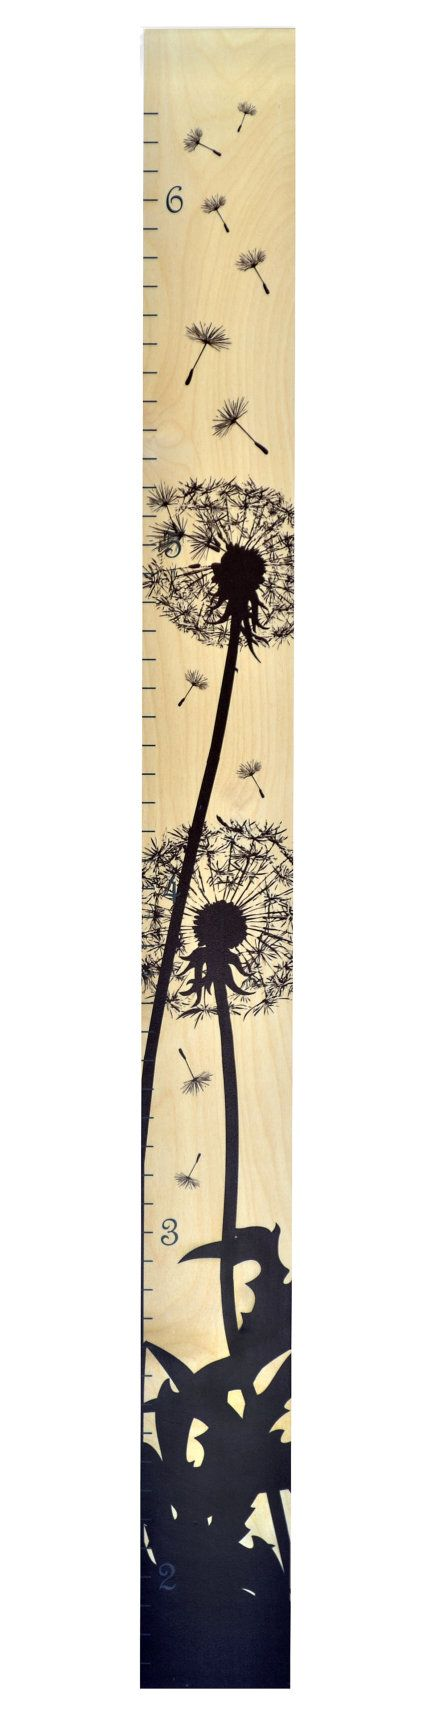 Dandelion Silhouette Modern Wooden Ruler Growth by GrowthChartArt